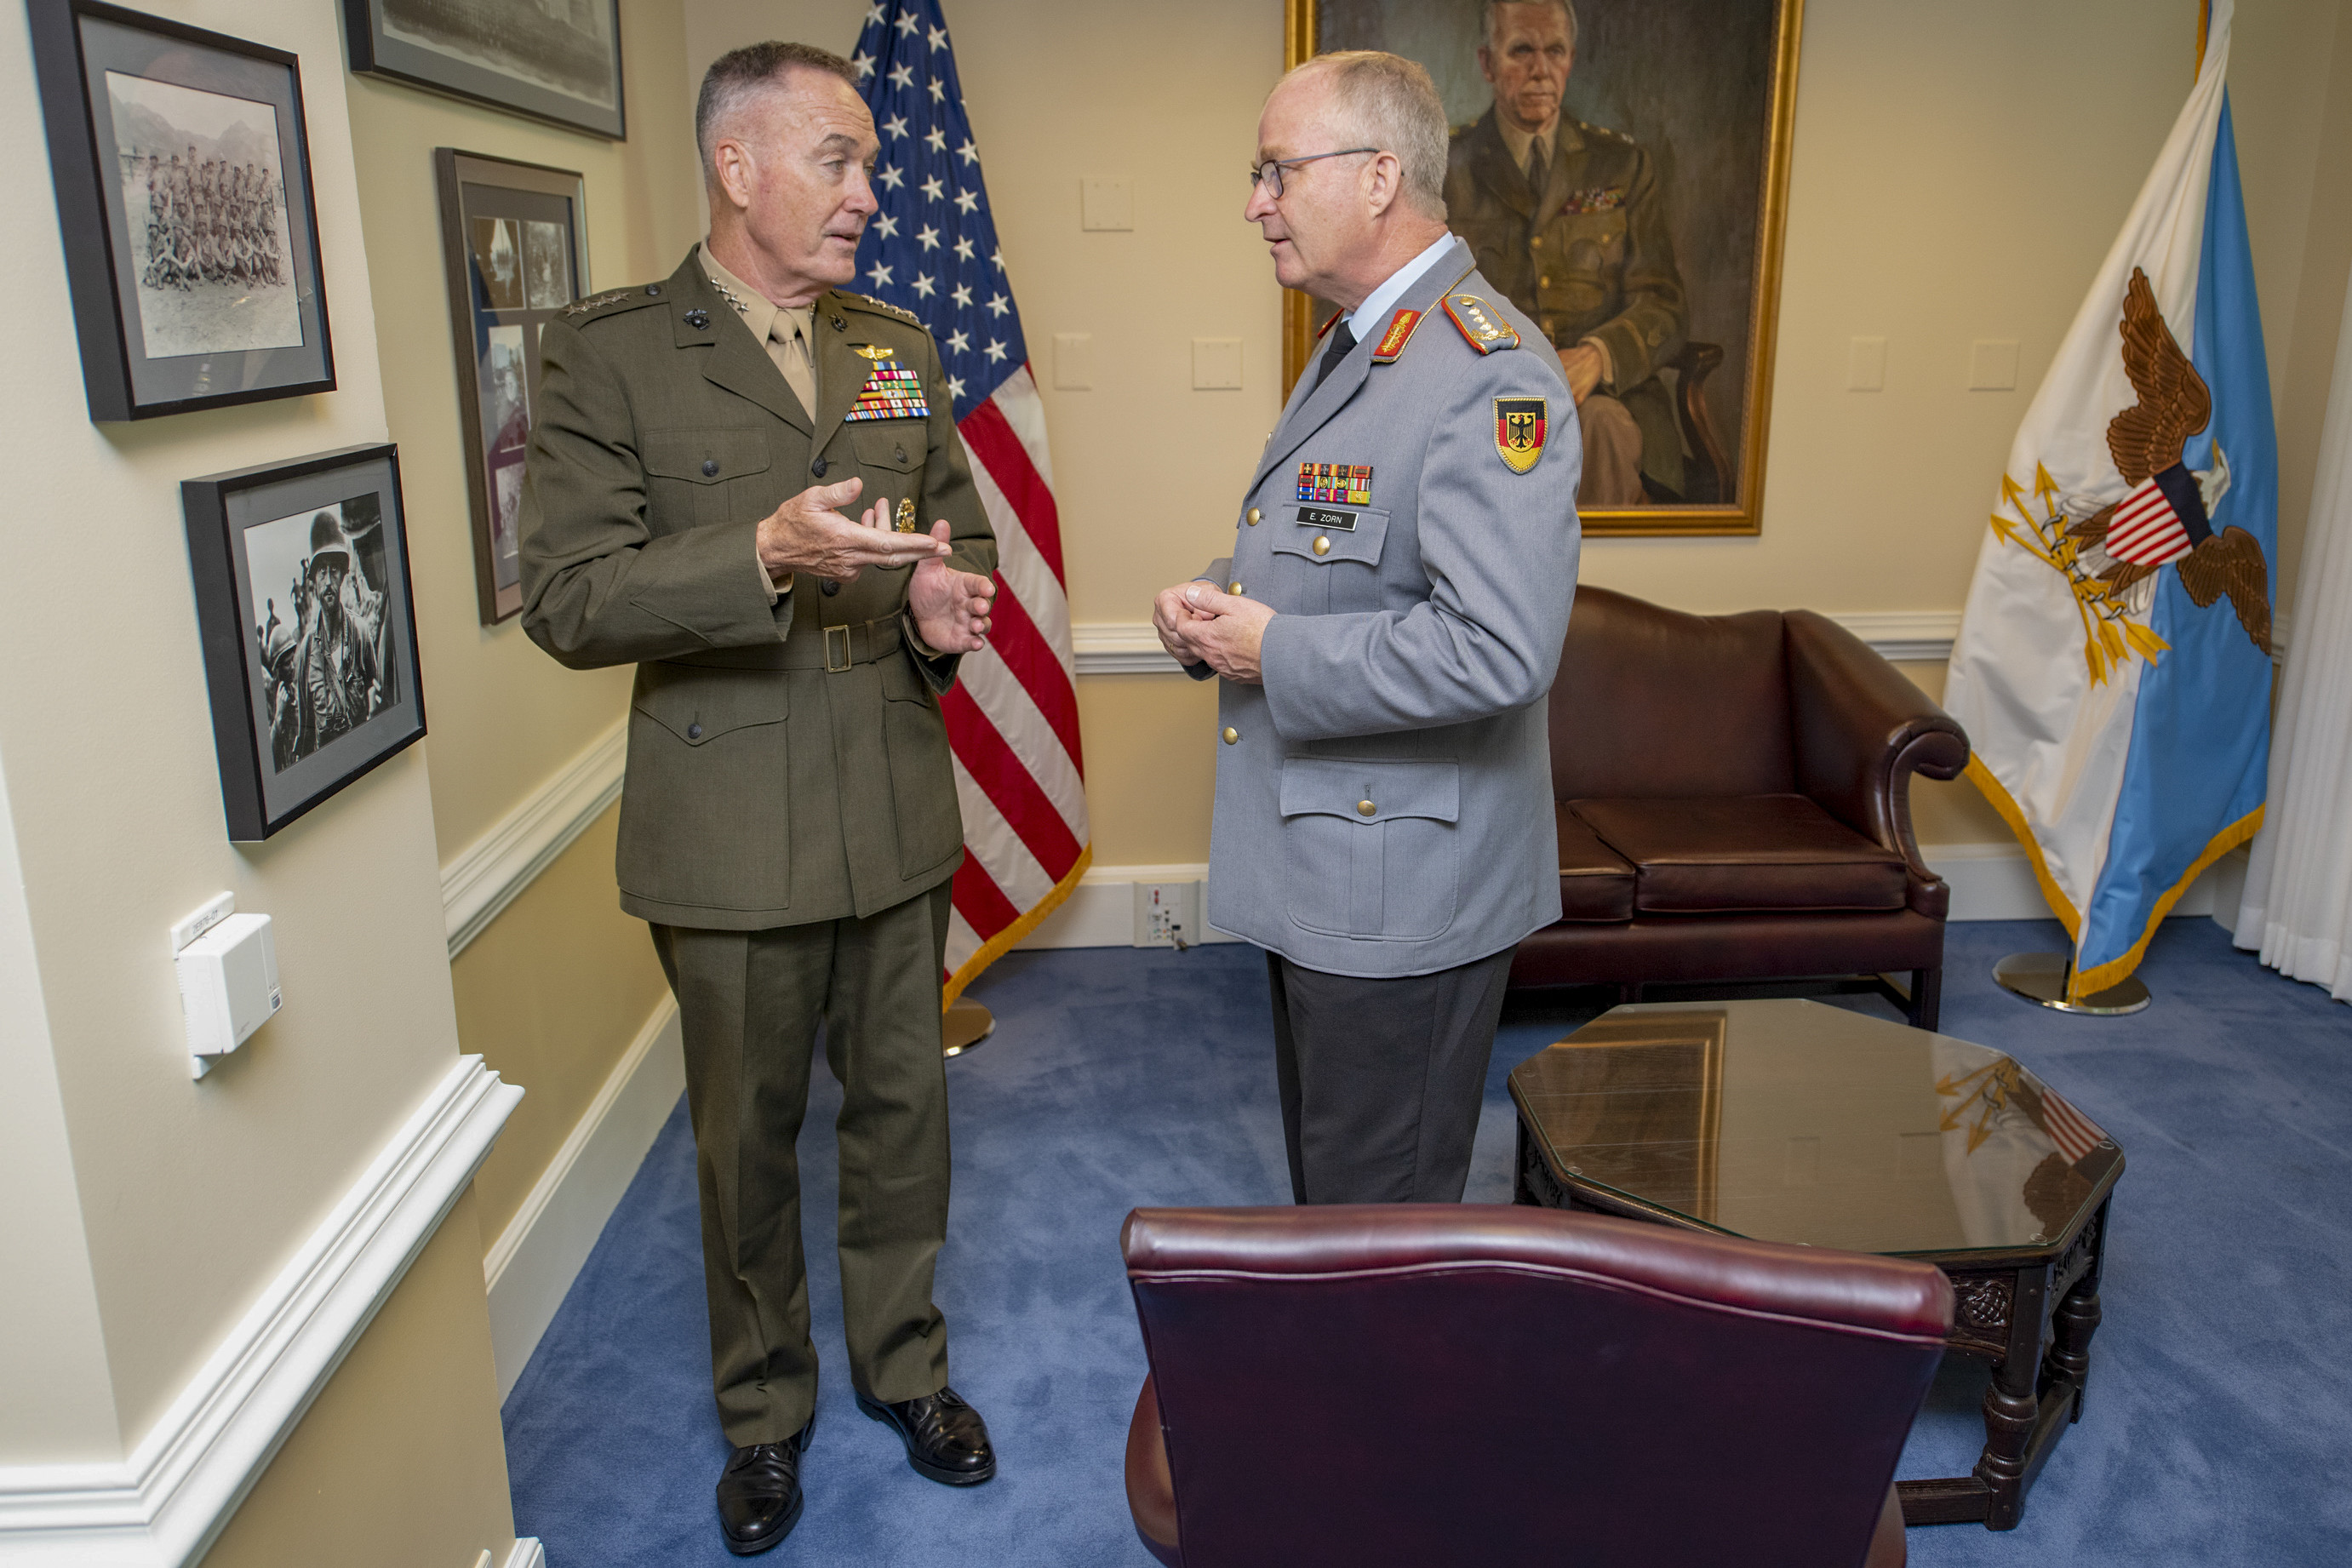 Marine Corps Gen. Joe Dunford, chairman of the Joint Chiefs of Staff, gives German Inspector Gen. Eberhard Zorn, chief of staff of the Federal Armed Forces, a tour of his office at the Pentagon.